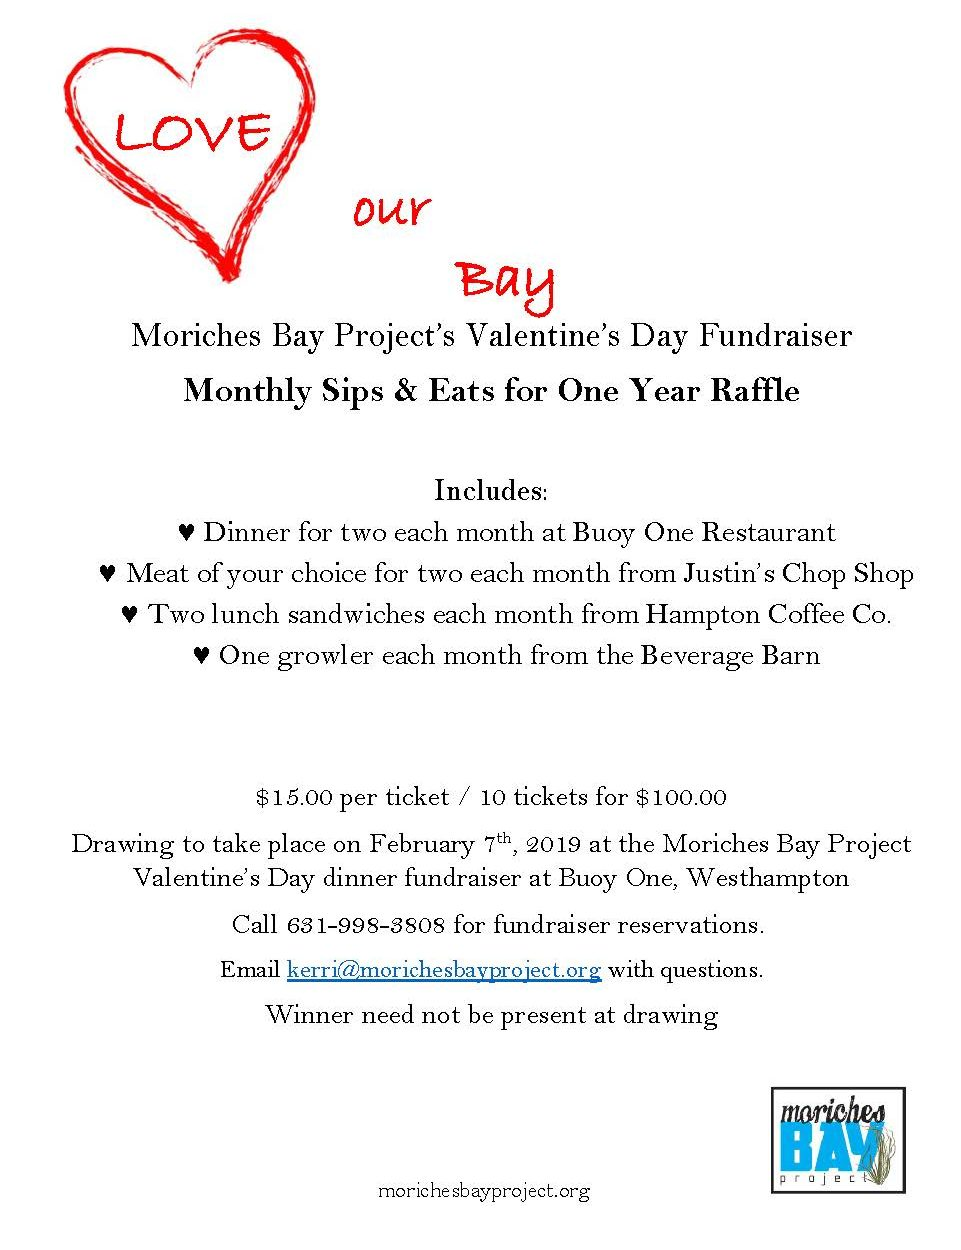 Moriches Bay Project Annual Valentine's Dinner